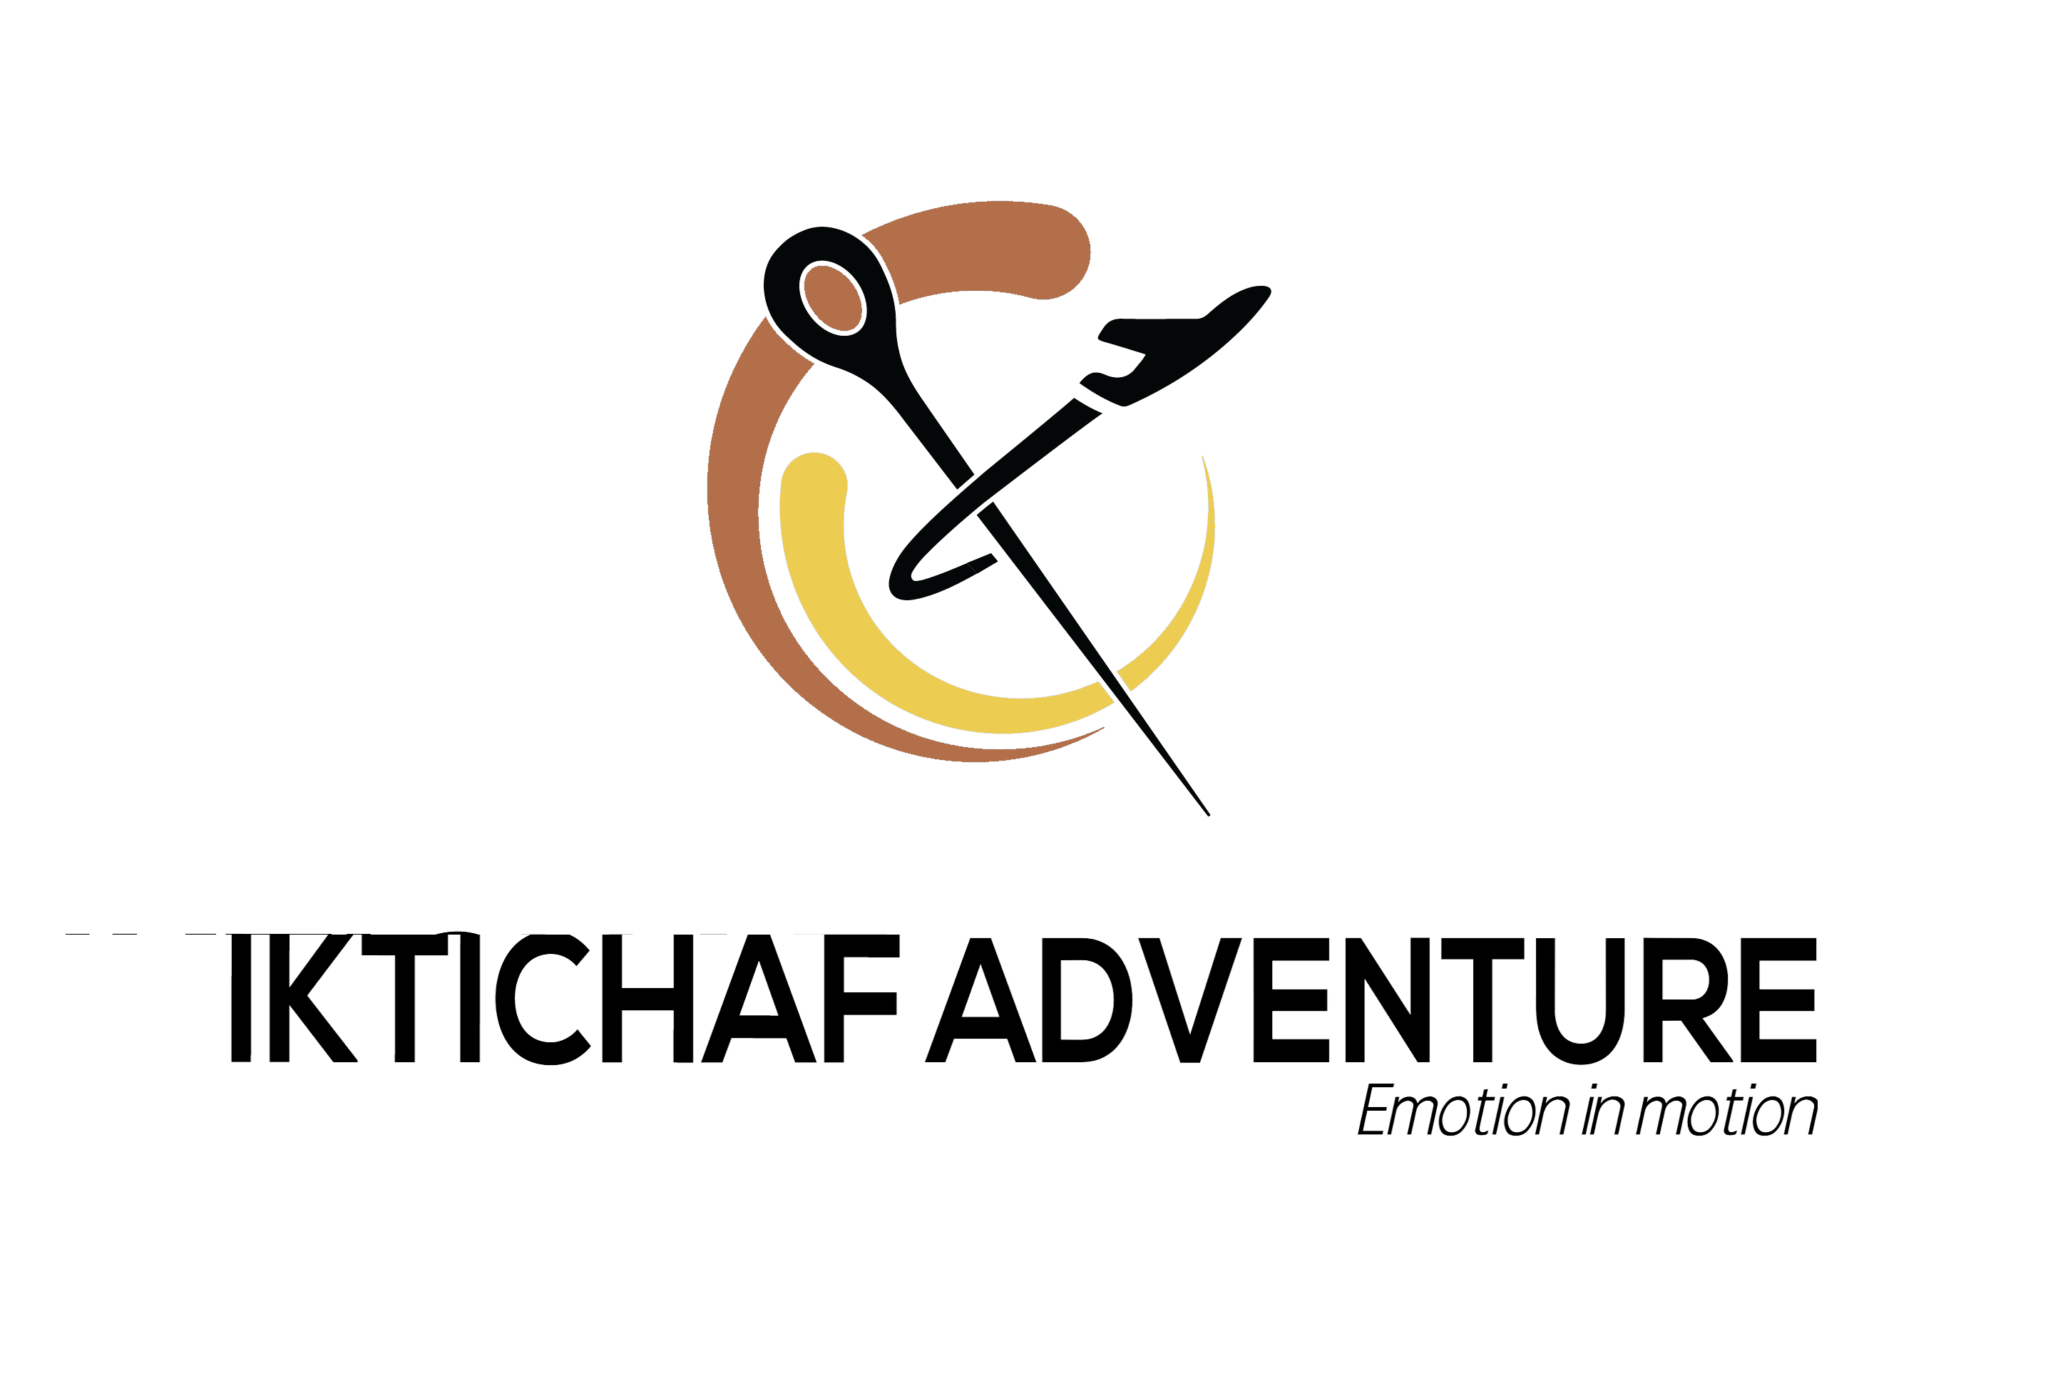 Iktichaf Travel Iktichaf Adventure